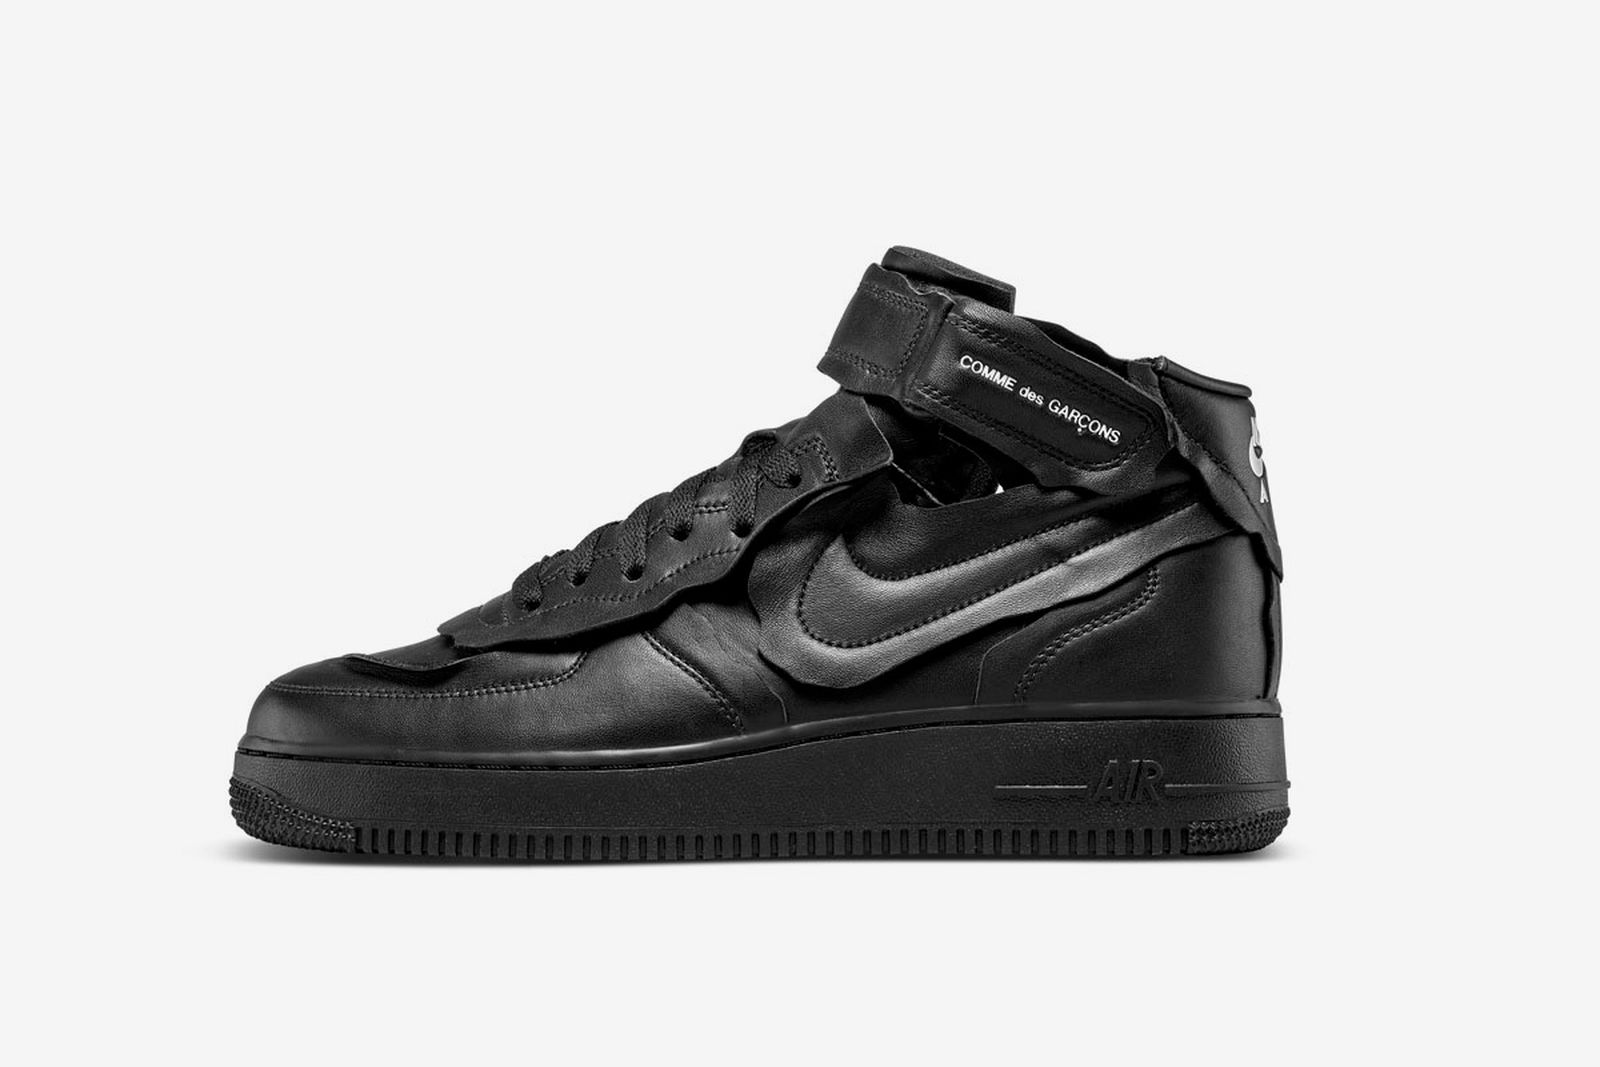 comme-des-garcons-nike-air-force-1-mid-release-date-price-02